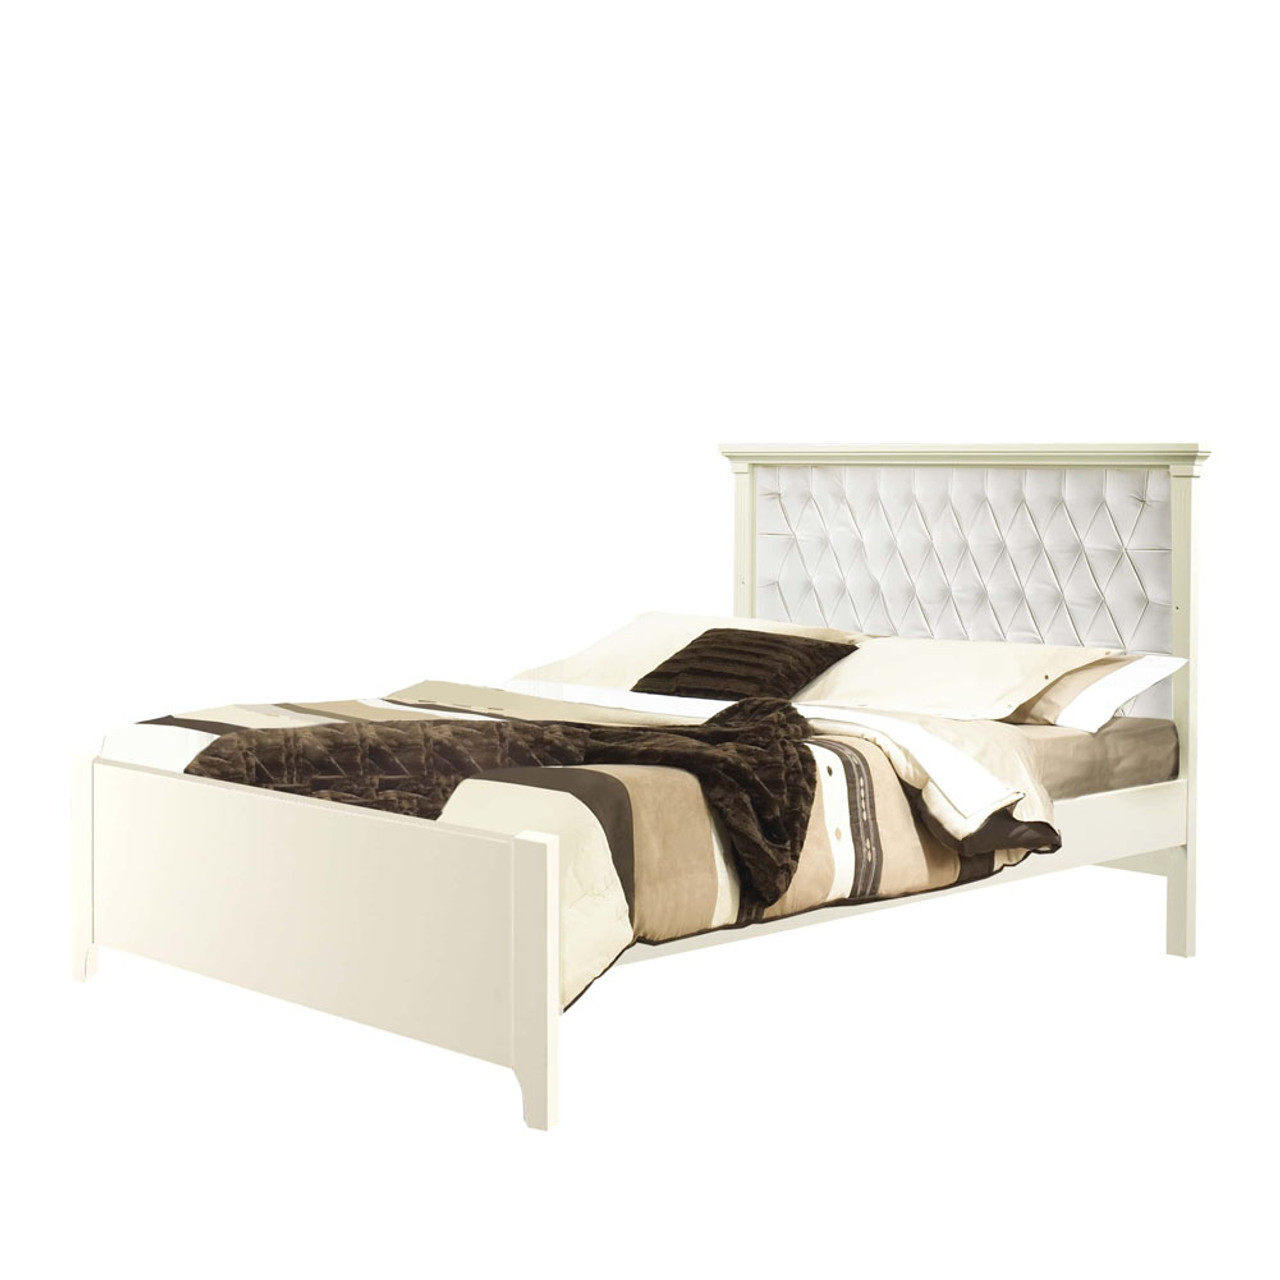 Natart Belmont Double Bed 54 Inch With Low Profile Footboard White With White Diamond Tufted Upholstered Headboard Panel Dear Born Baby